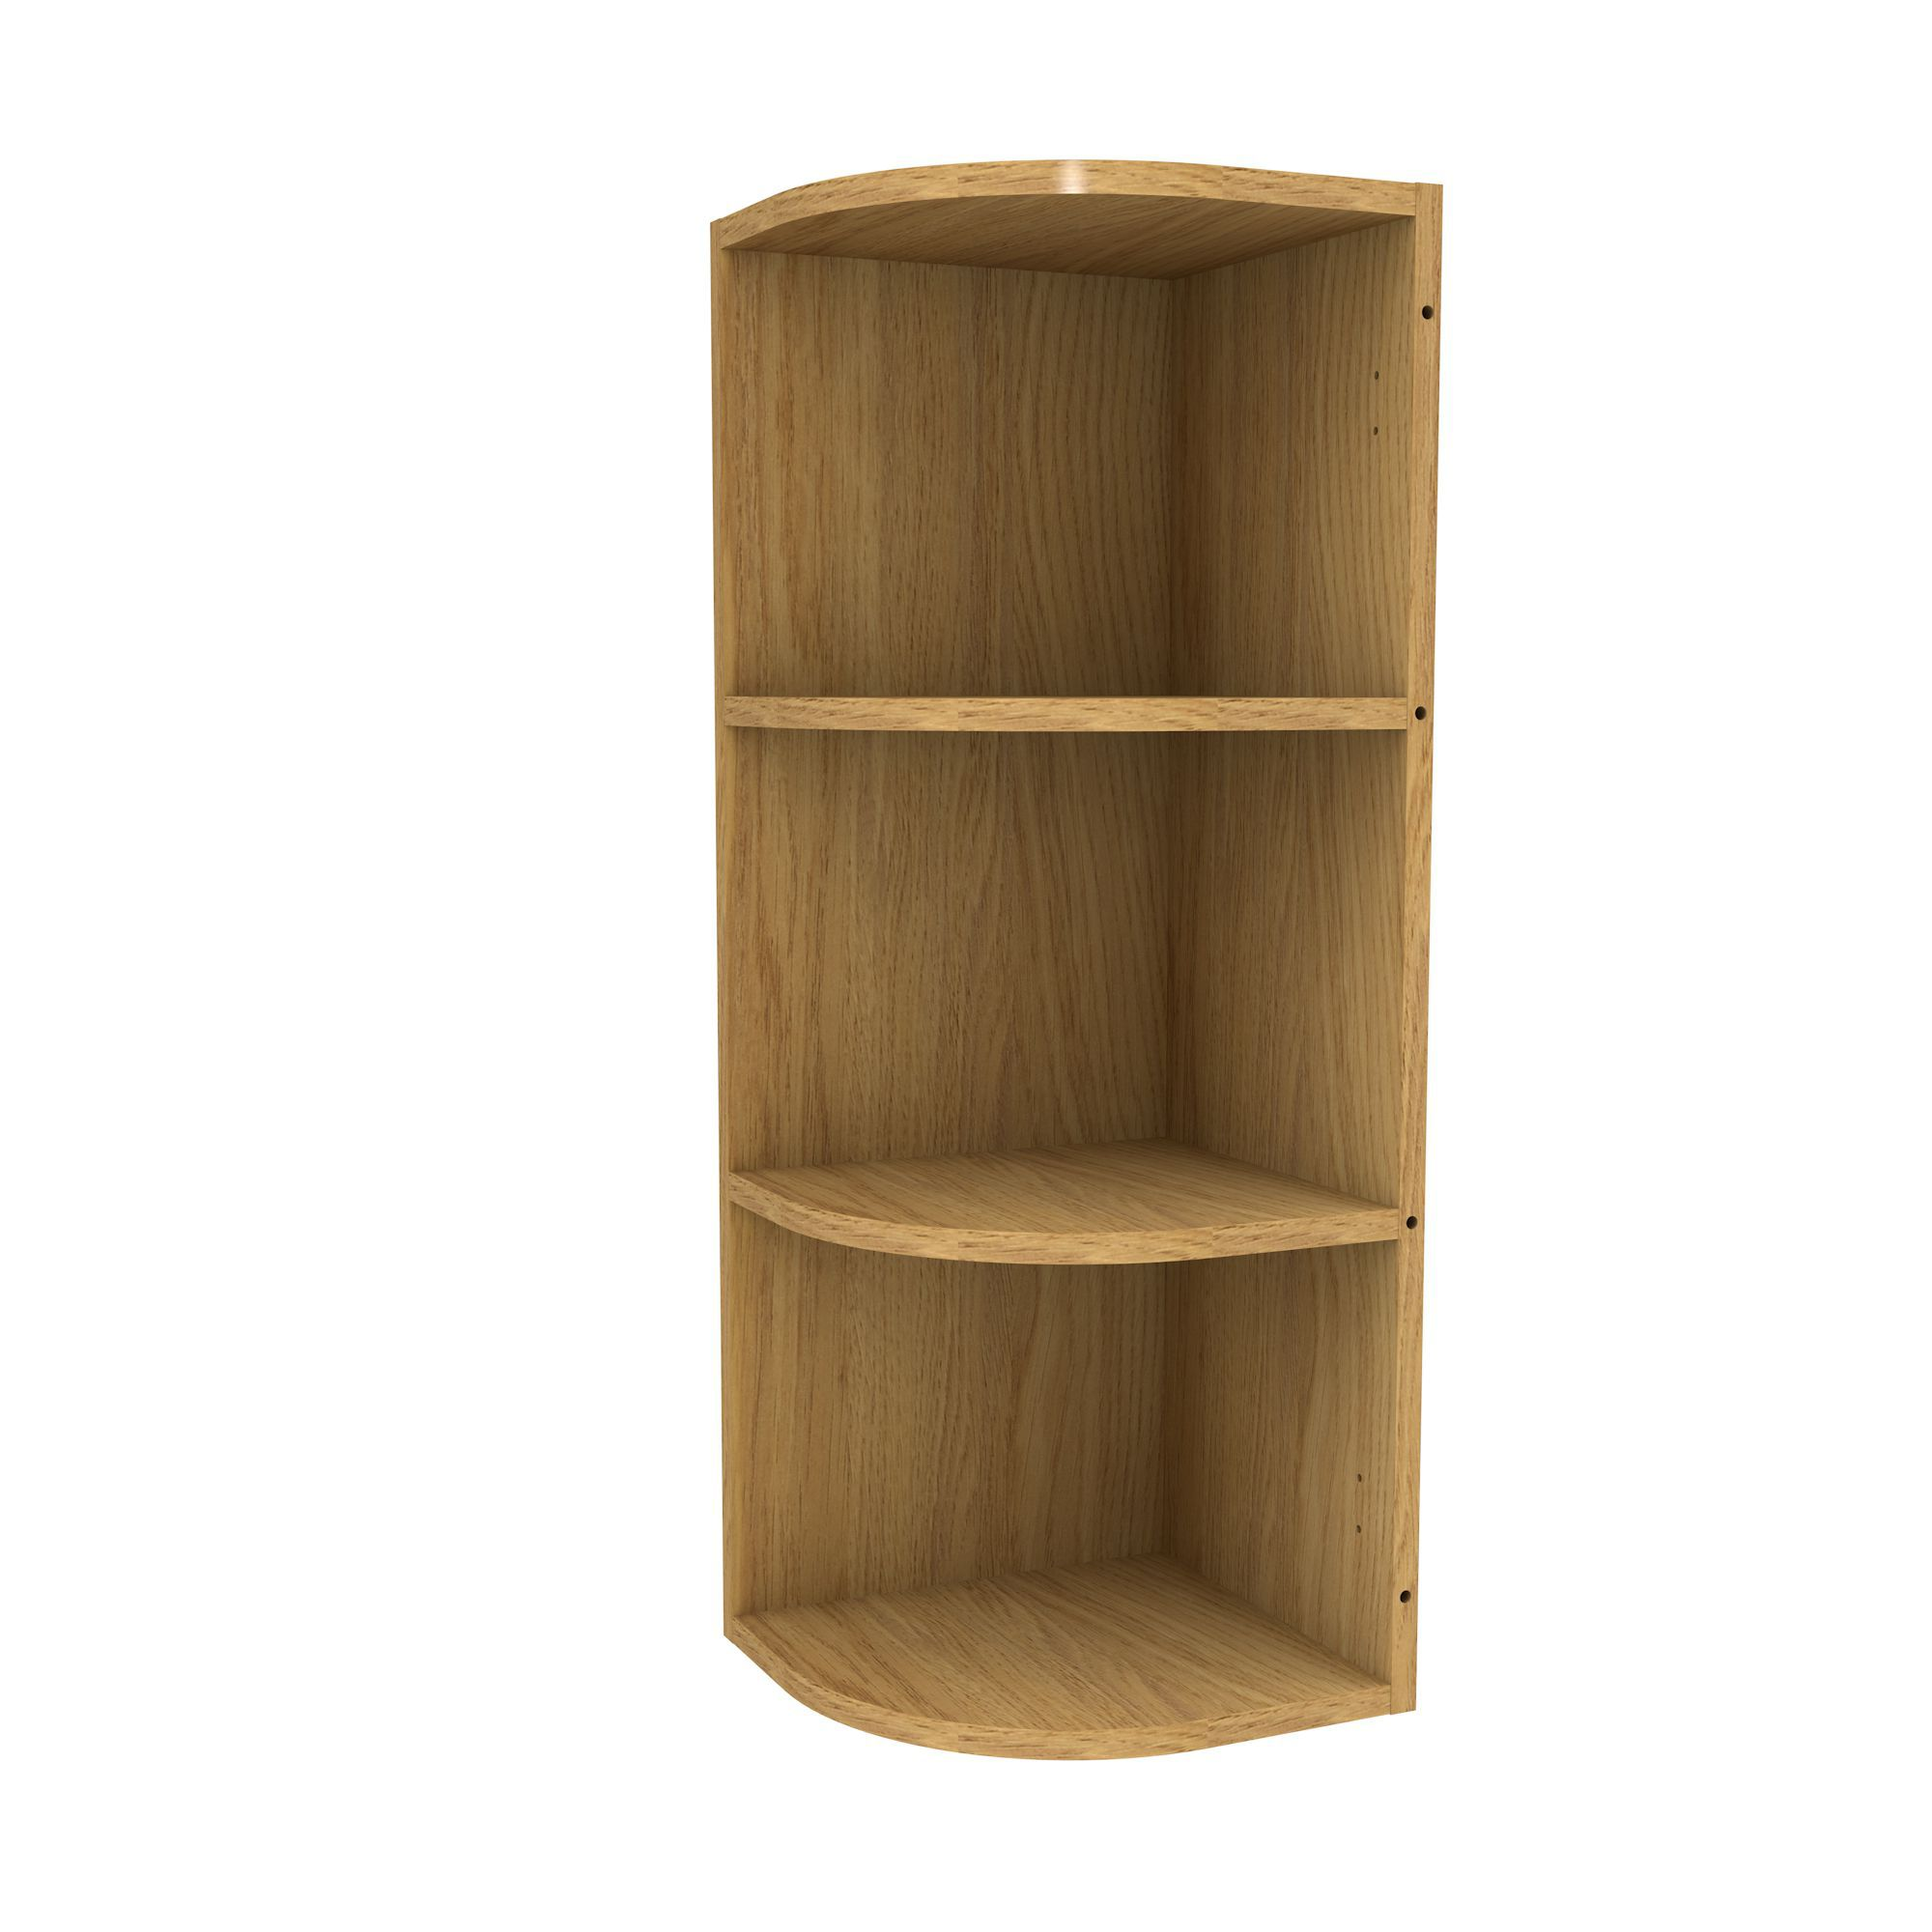 Cooke lewis oak effect curved end tall wall cabinet w for Oak effect kitchen wall units